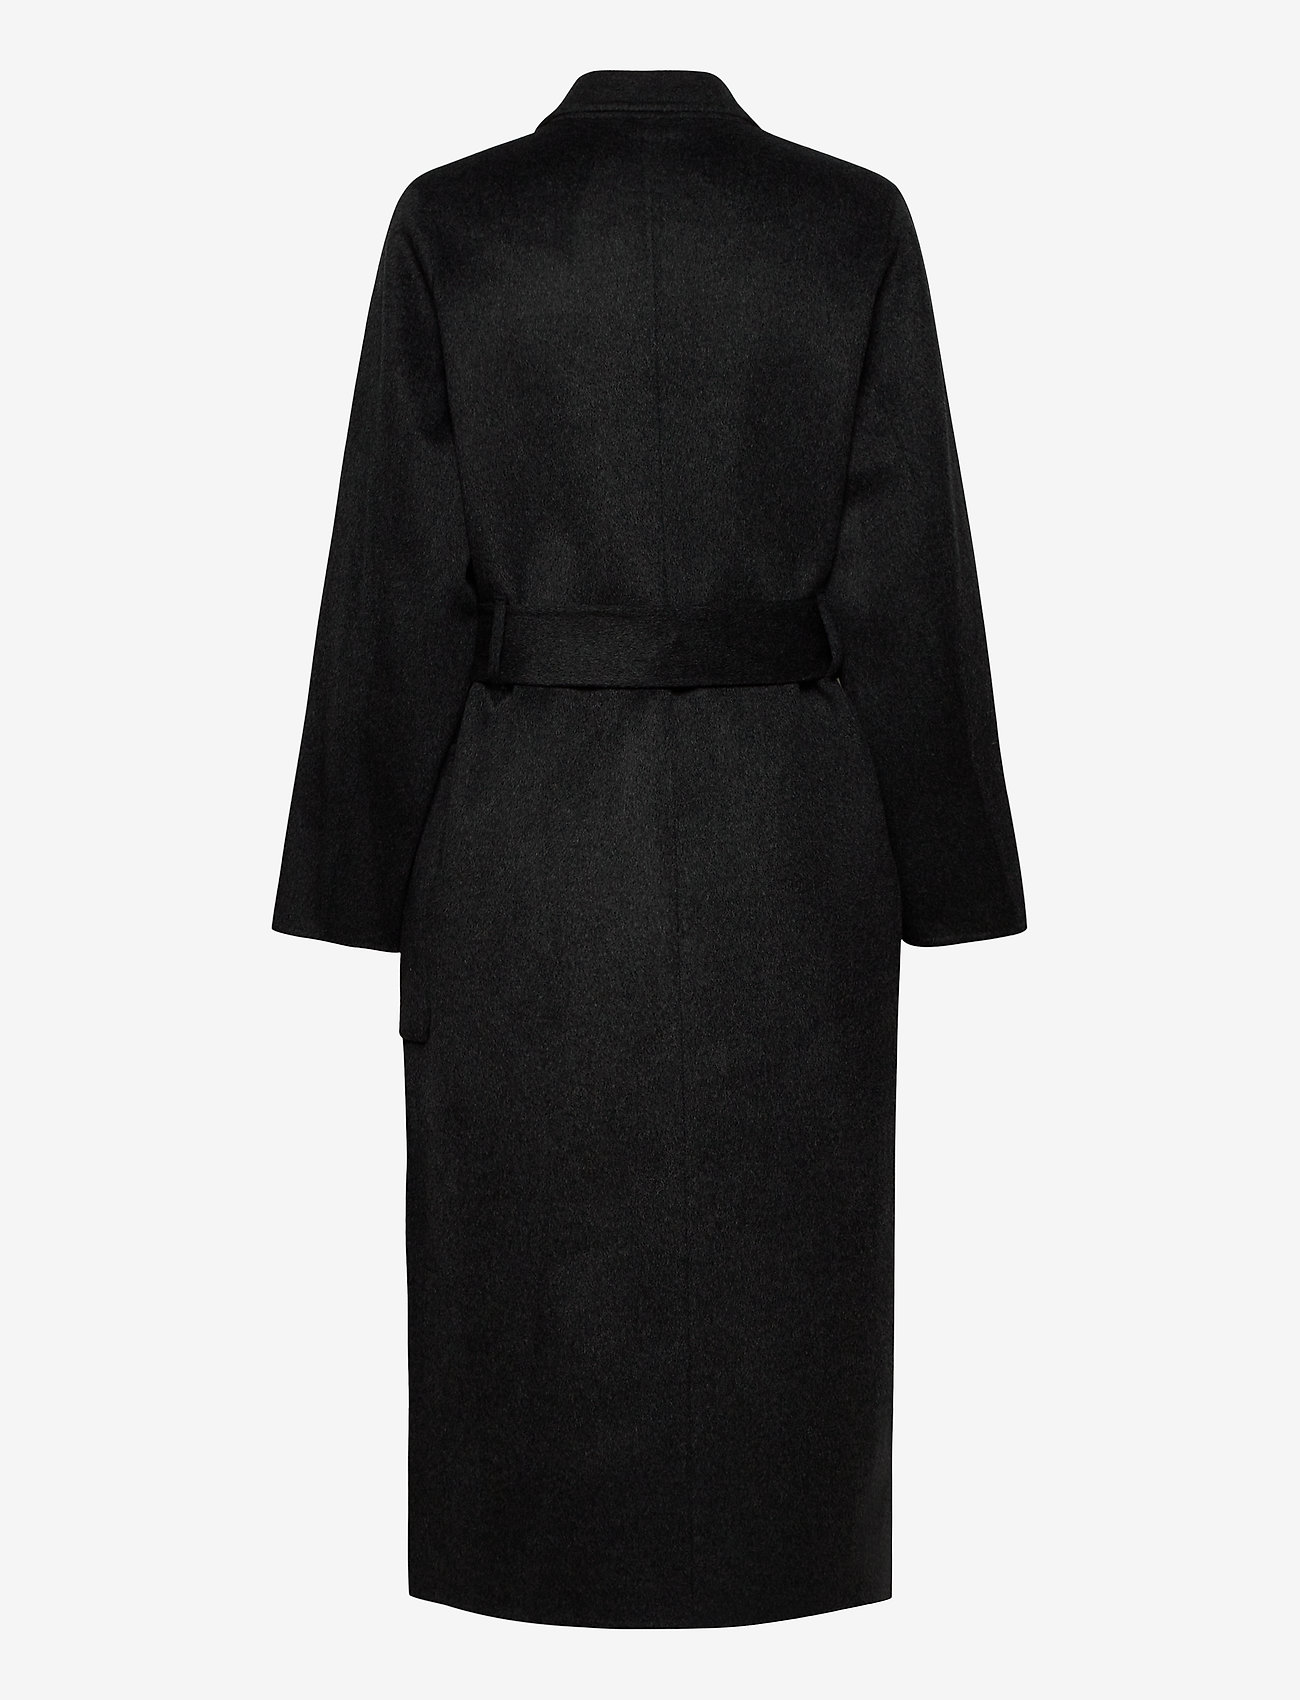 Ivy & Oak - DOUBLE BREASTED COAT - wollen jassen - anthracite - 1